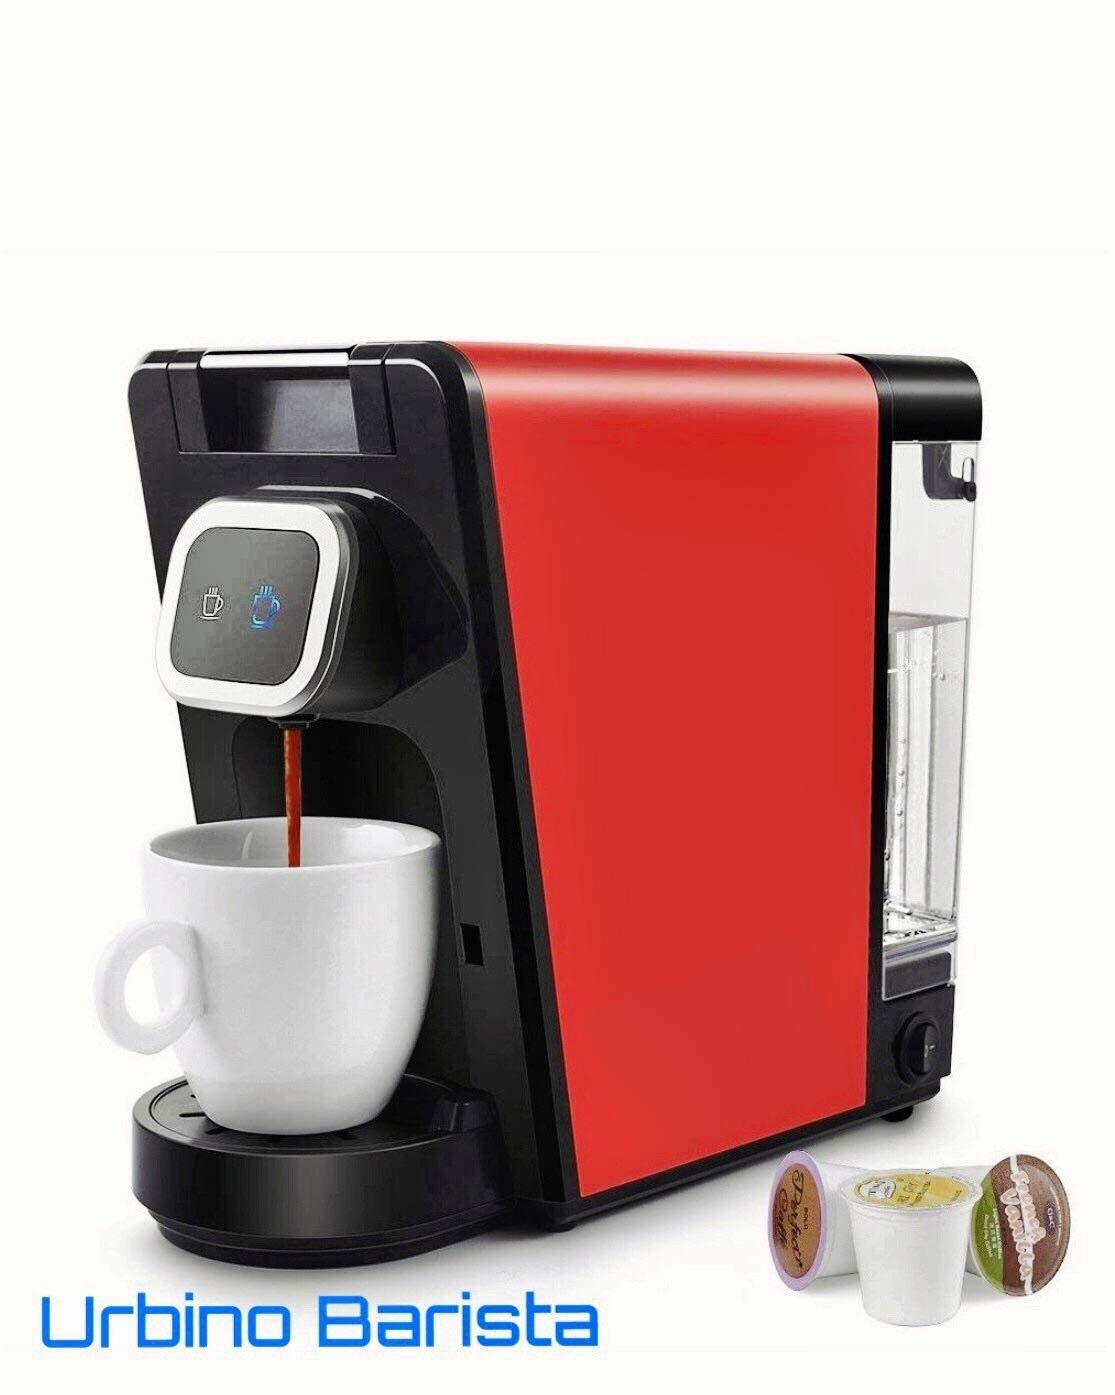 Urbino Barista compatible with K-cup Coffee Maker, Ground Coffee,Small and Big Cup Buttons with Indicator Light,Large Visible Removable Reservoir (RED-BLACK)